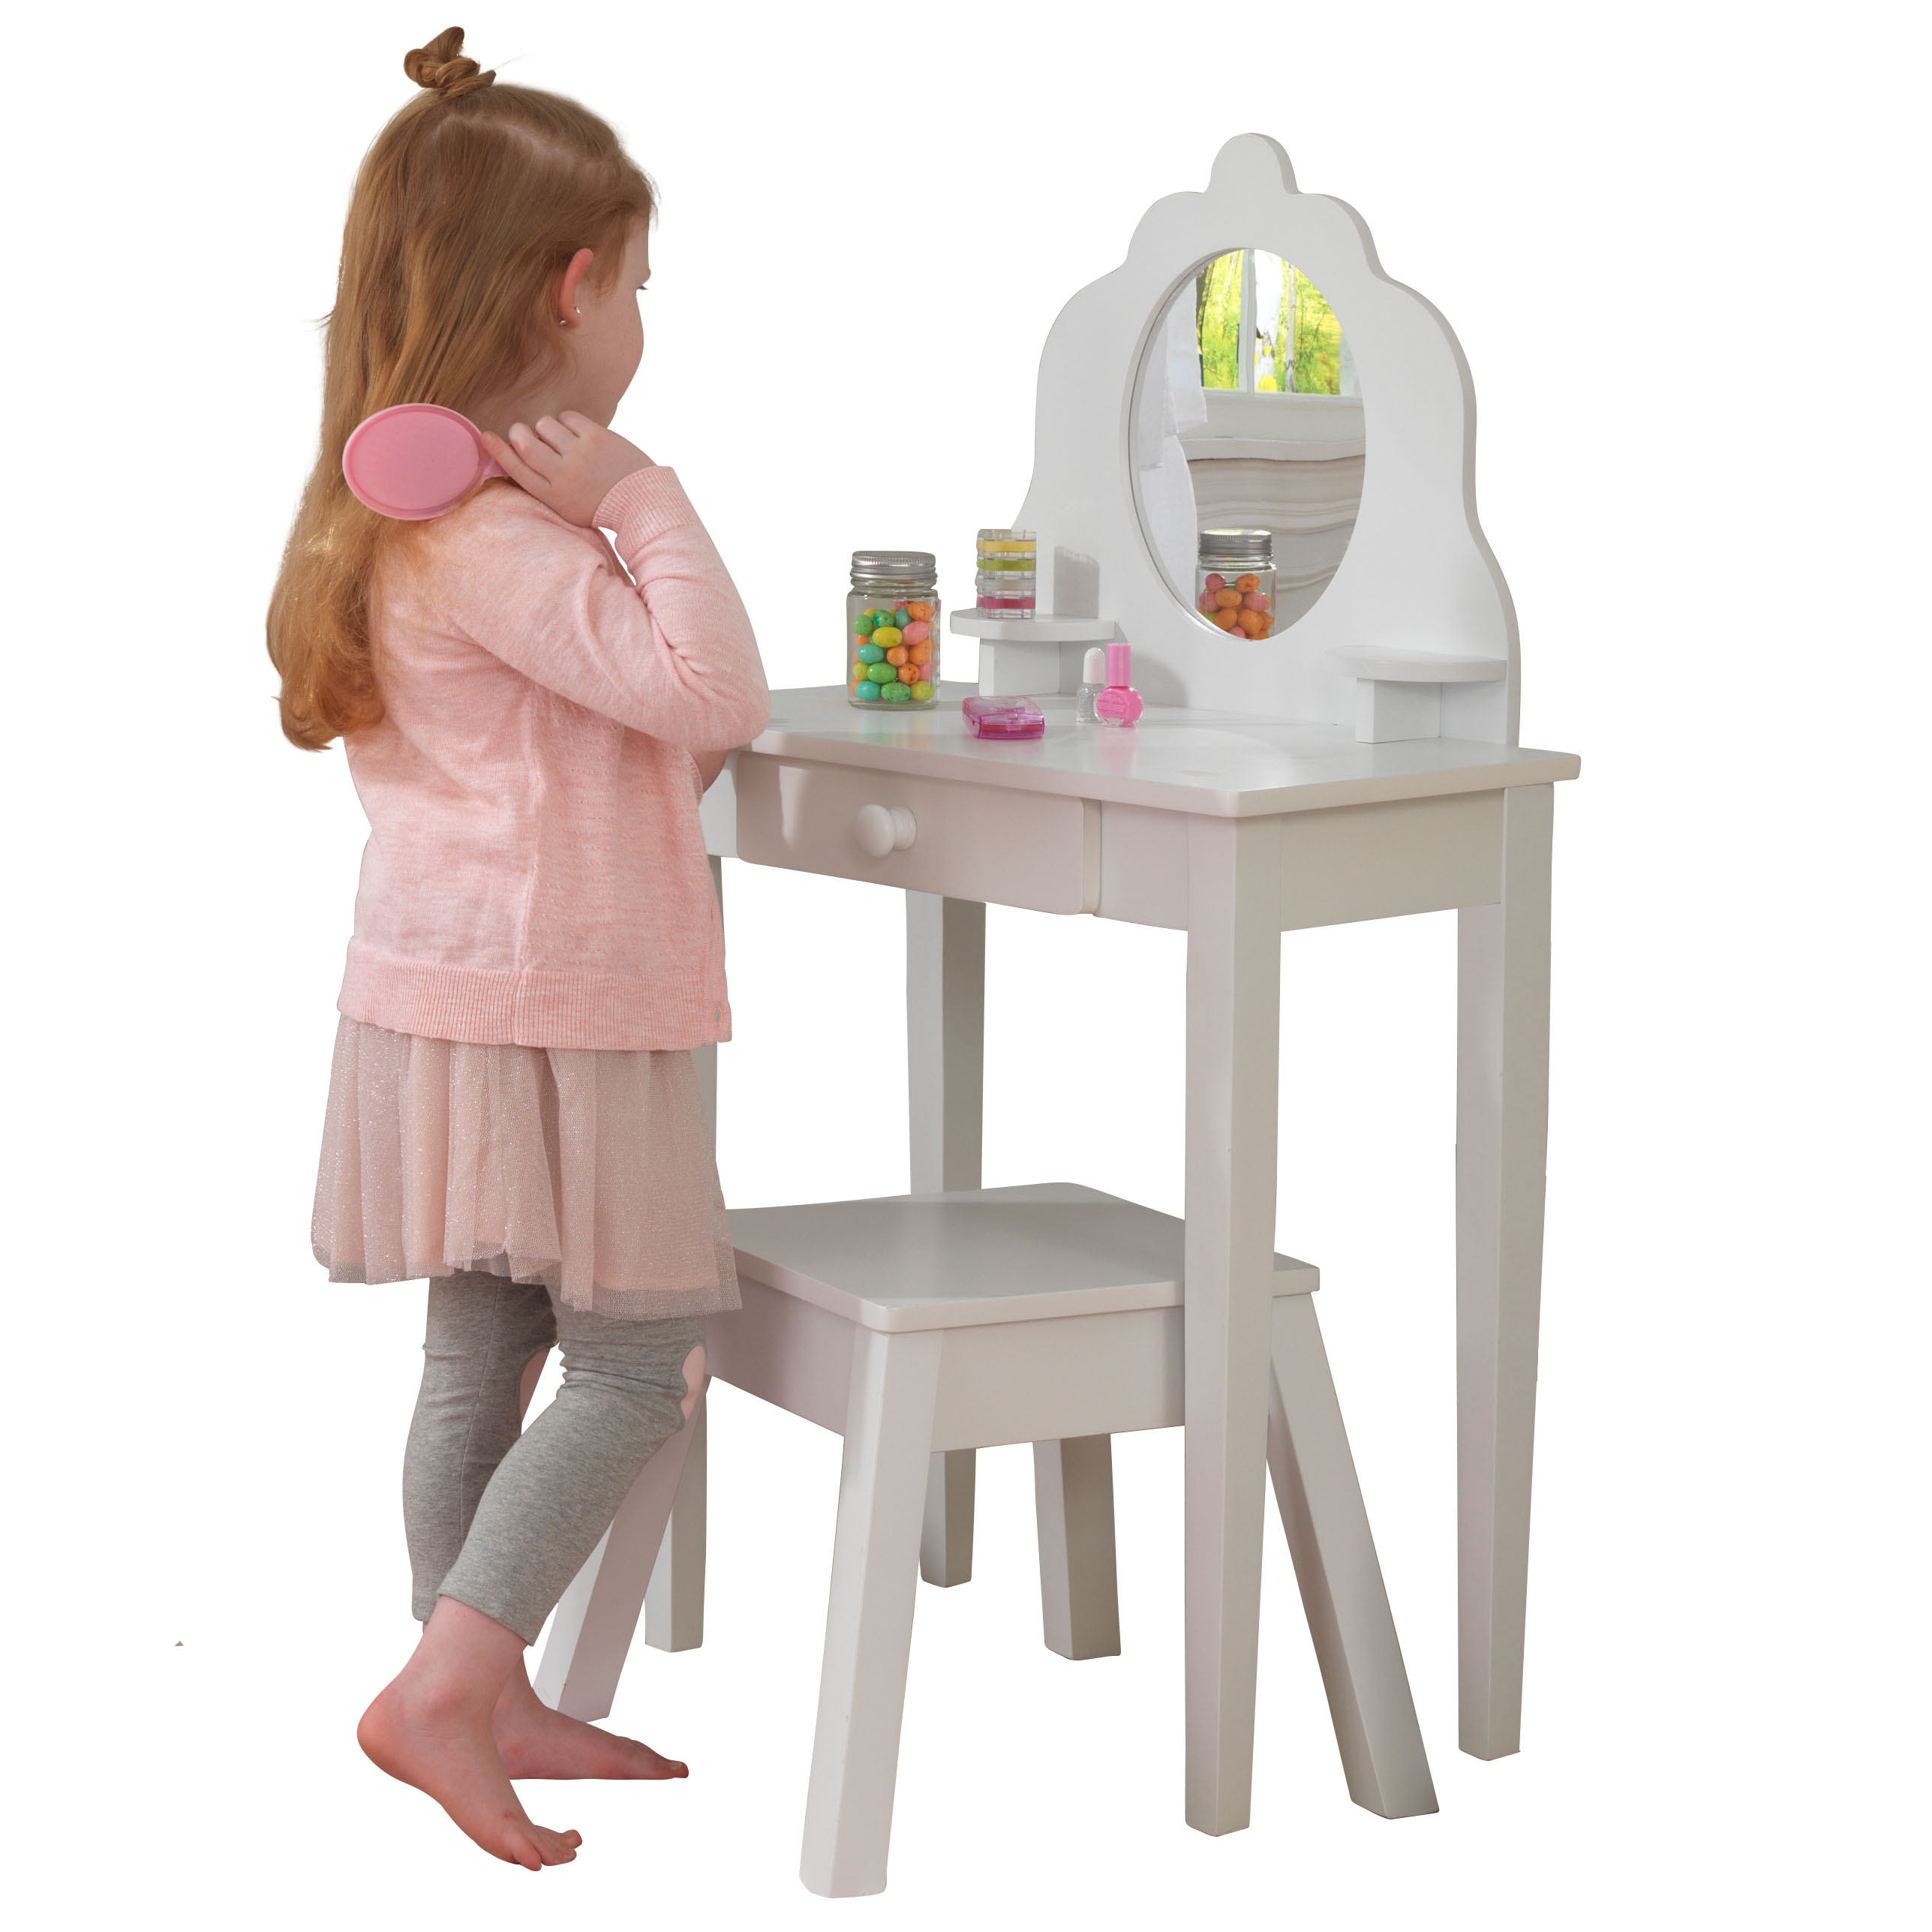 Kidkraft Medium Bedroom Vanity with Stool - White